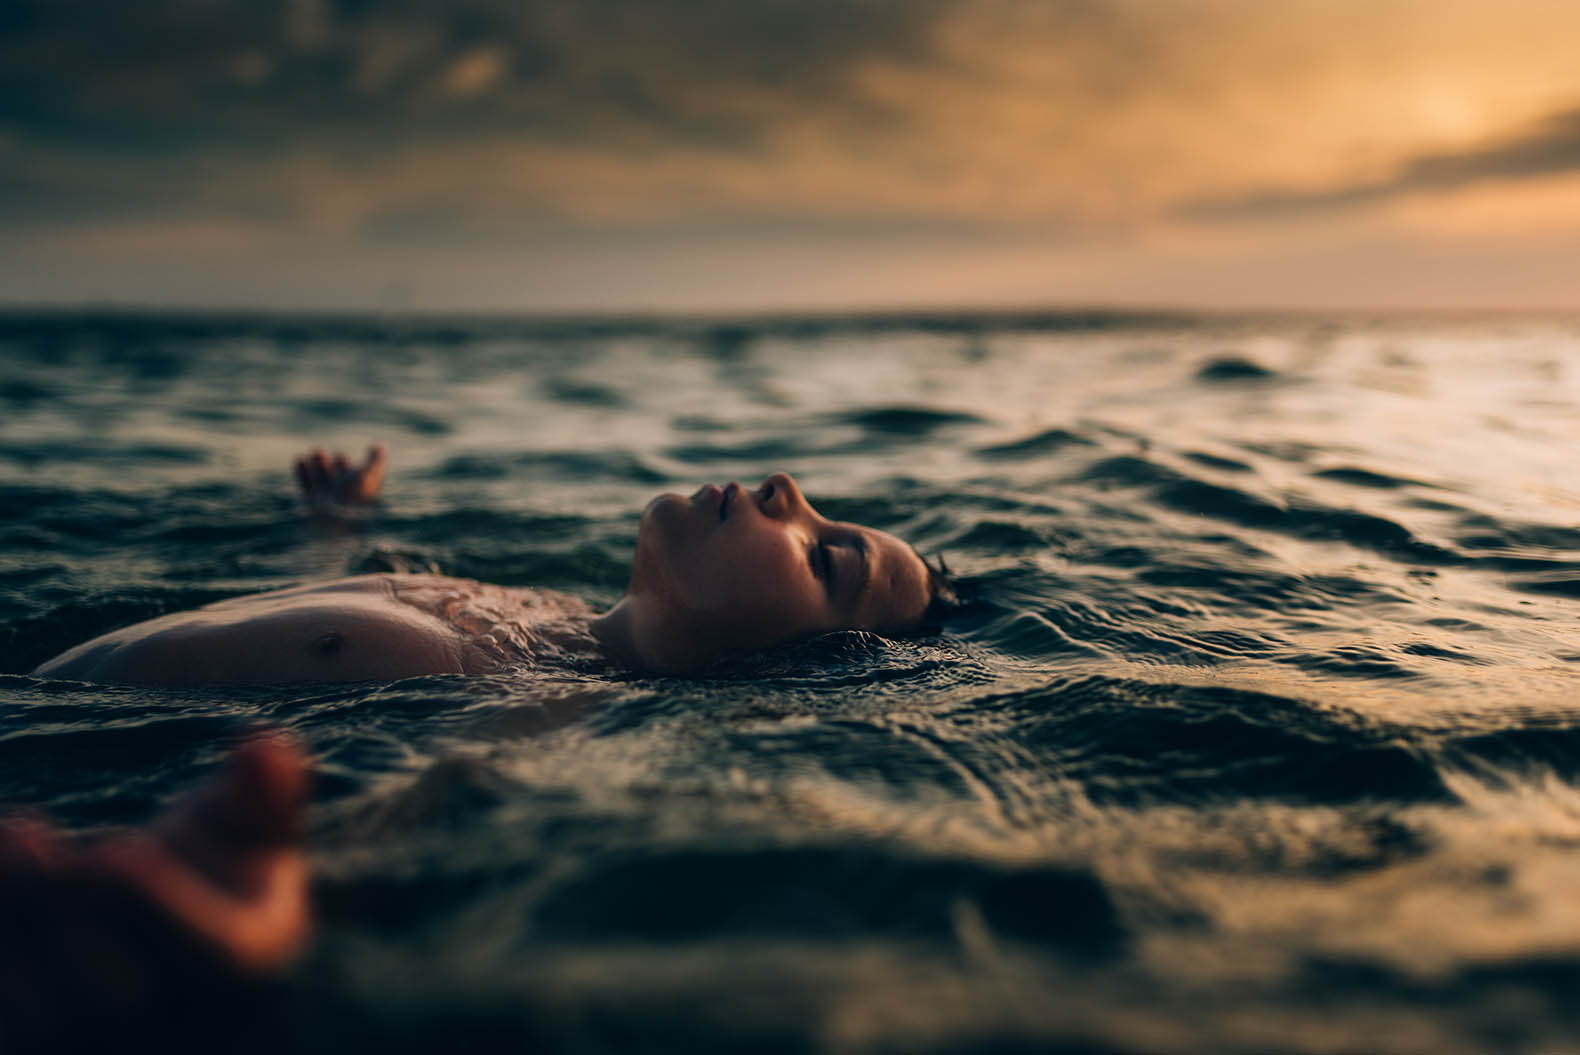 amber_talbert_child floating in open water at sunset